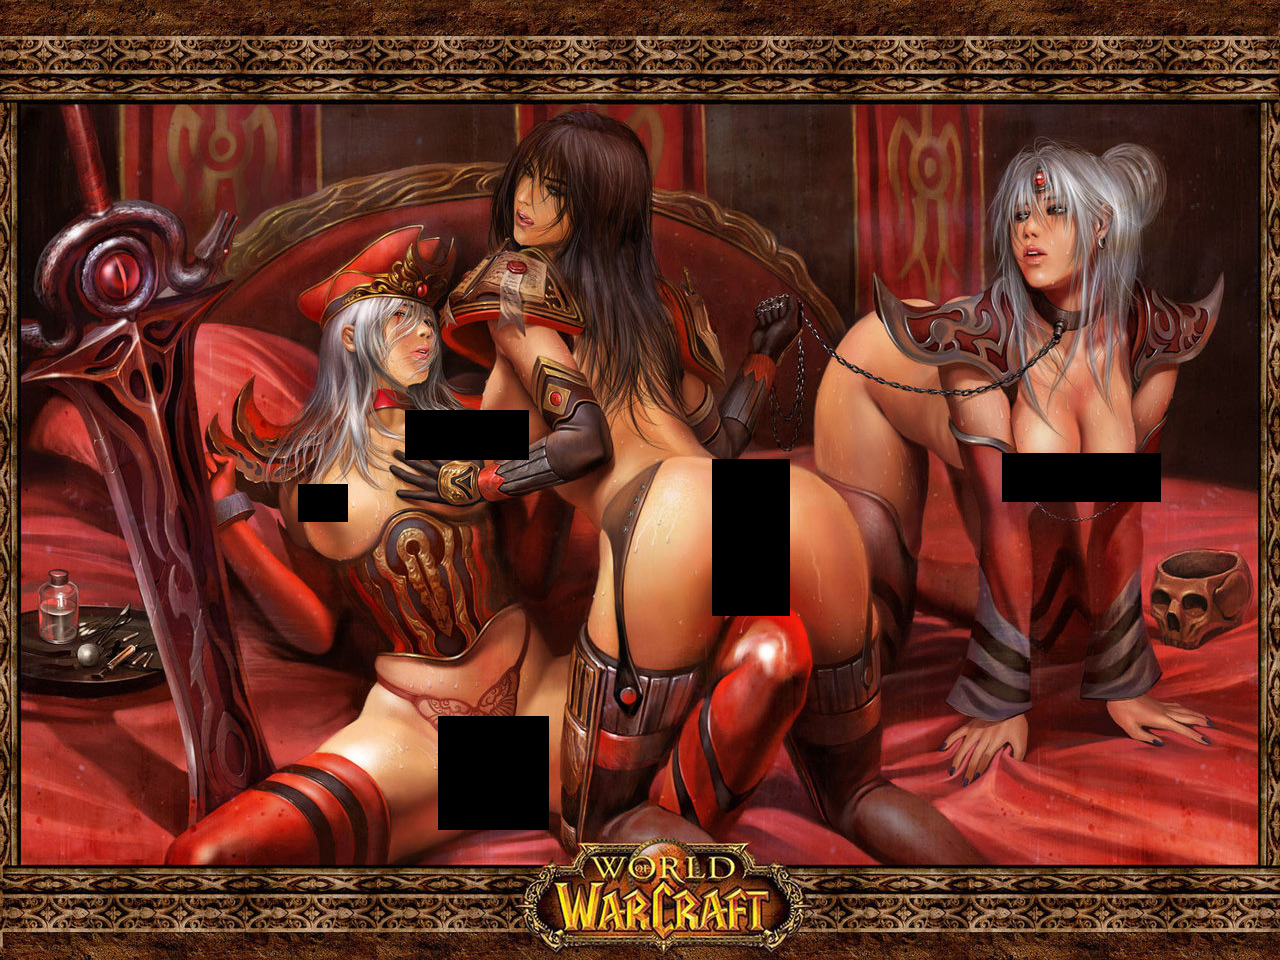 World of warcraft nude picture porn slaves